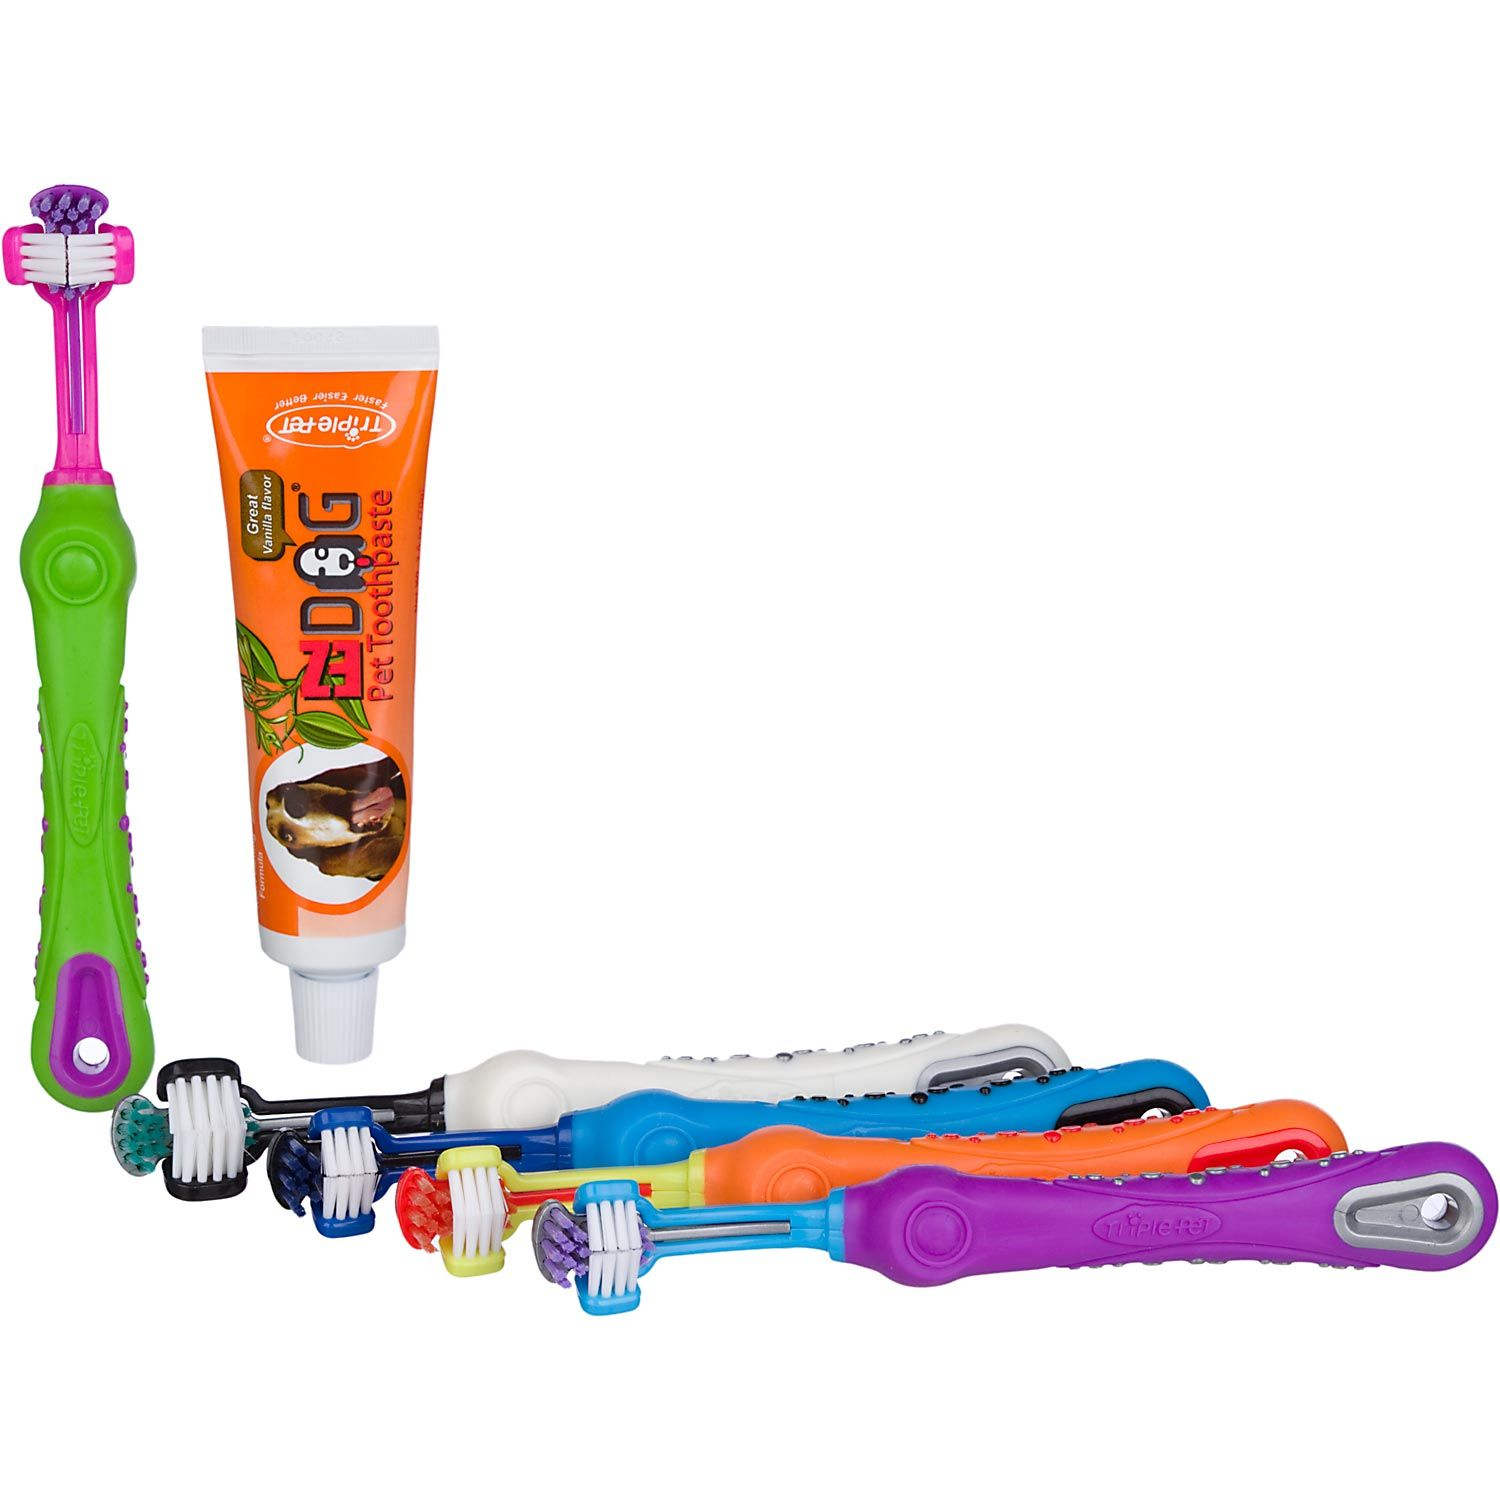 This dog toothbrush is awesome. It brushes several teeth at once. Great product!